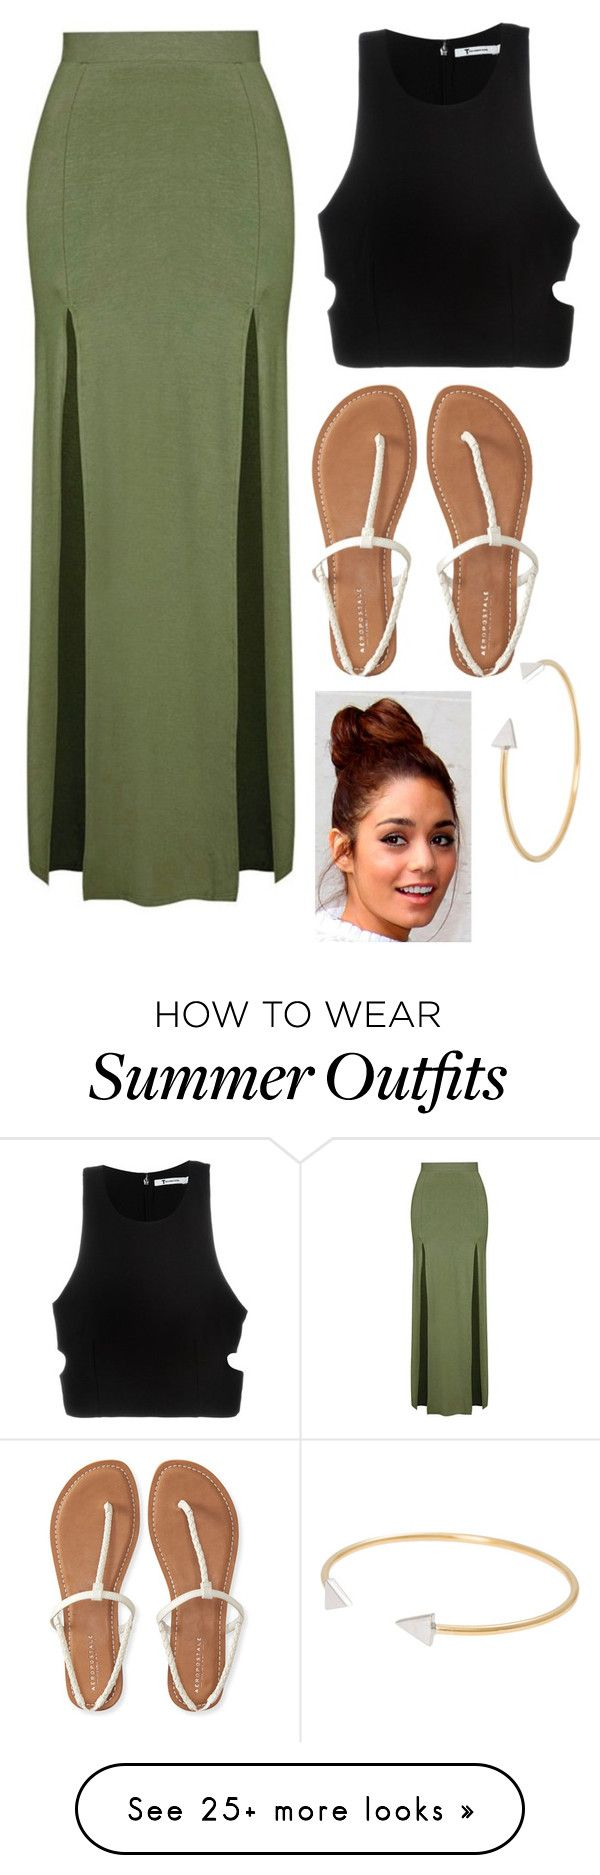 """summer outfit idea"" by kristinamalik on Polyvore featuring Topshop, T By Alexander Wang, Aéropostale and Vanessa Mooney"